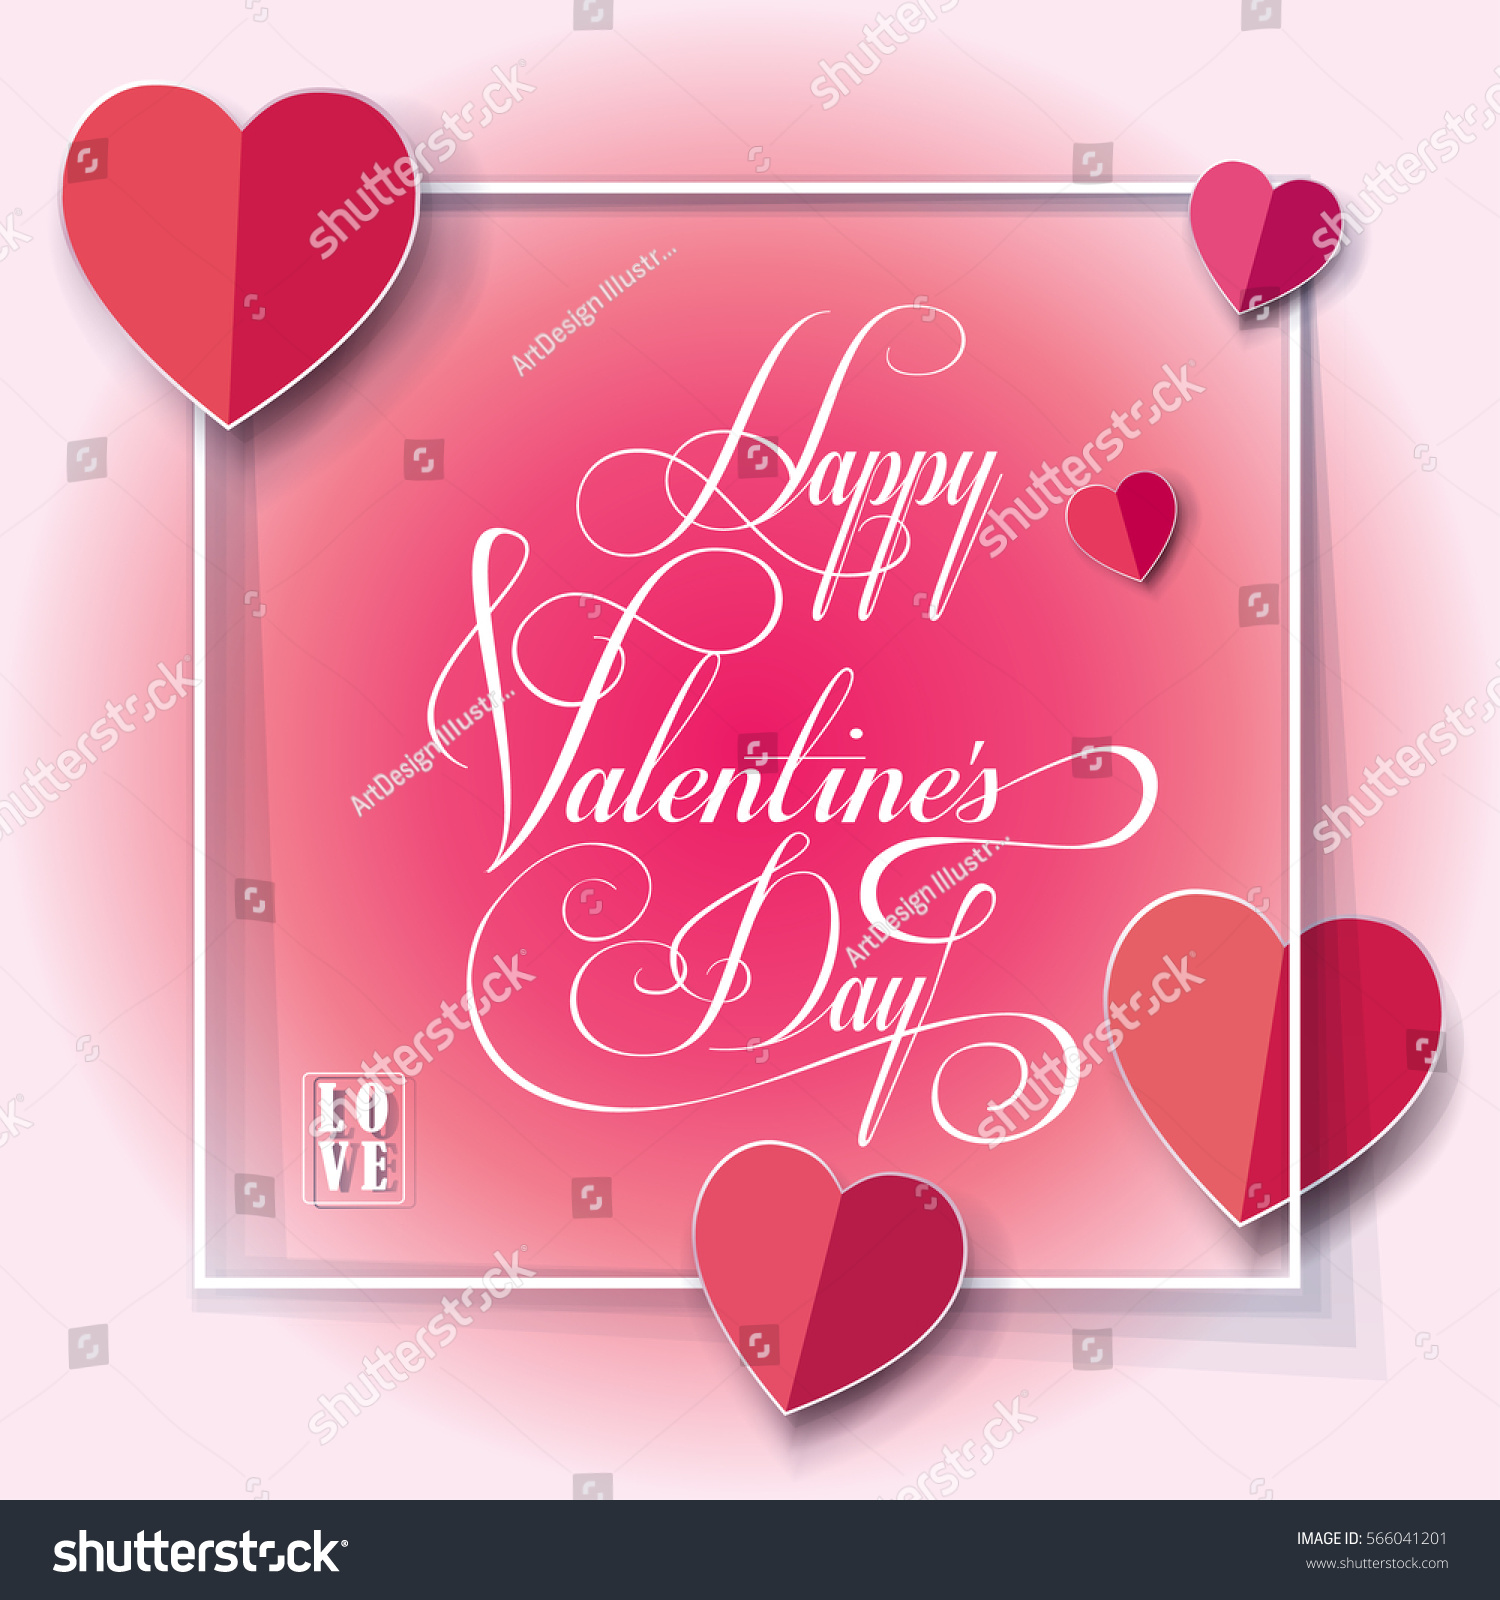 Happy Valentines Day Greeting Card Vector Template Romantic Poster